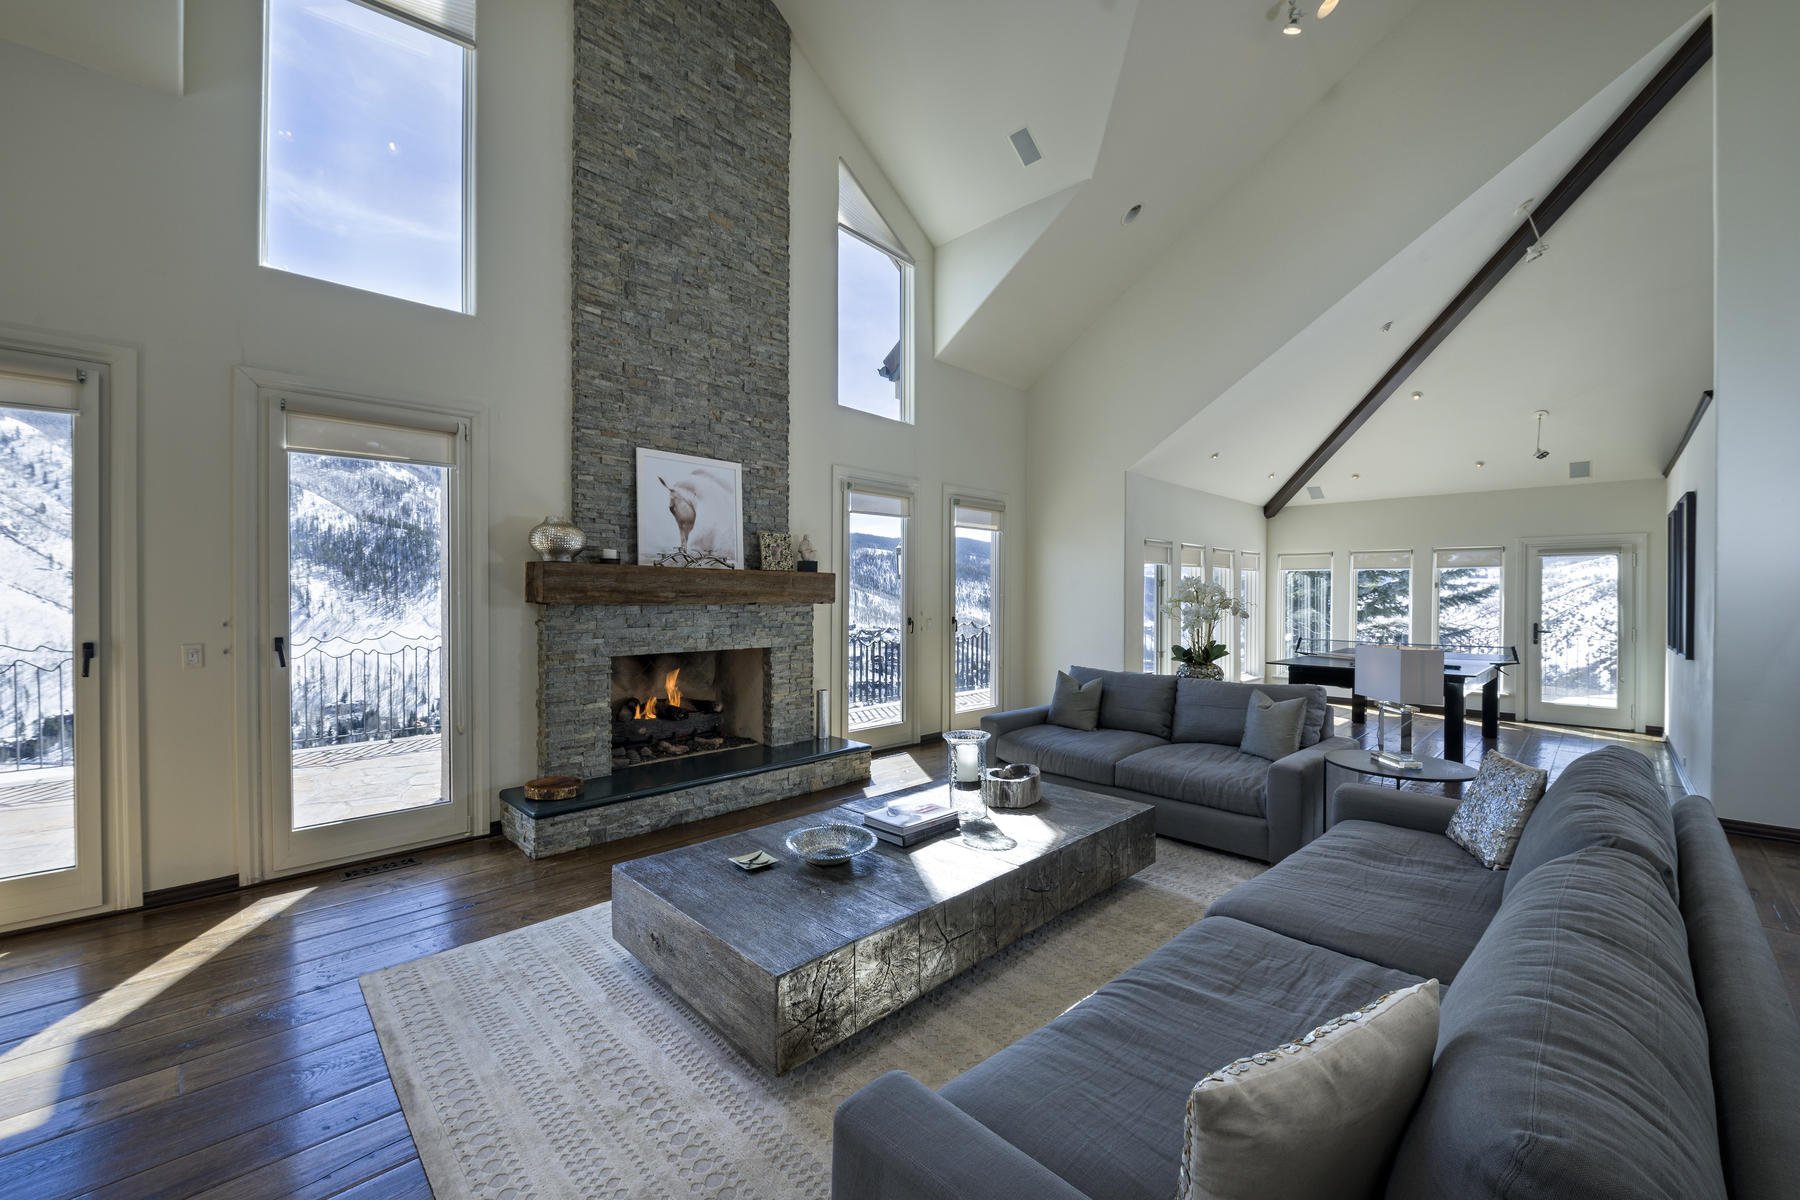 Single Family Home for Sale at Magnificent views of the Gore Range Mountains 1675 Aspen Ridge Road Vail, Colorado, 81657 United States